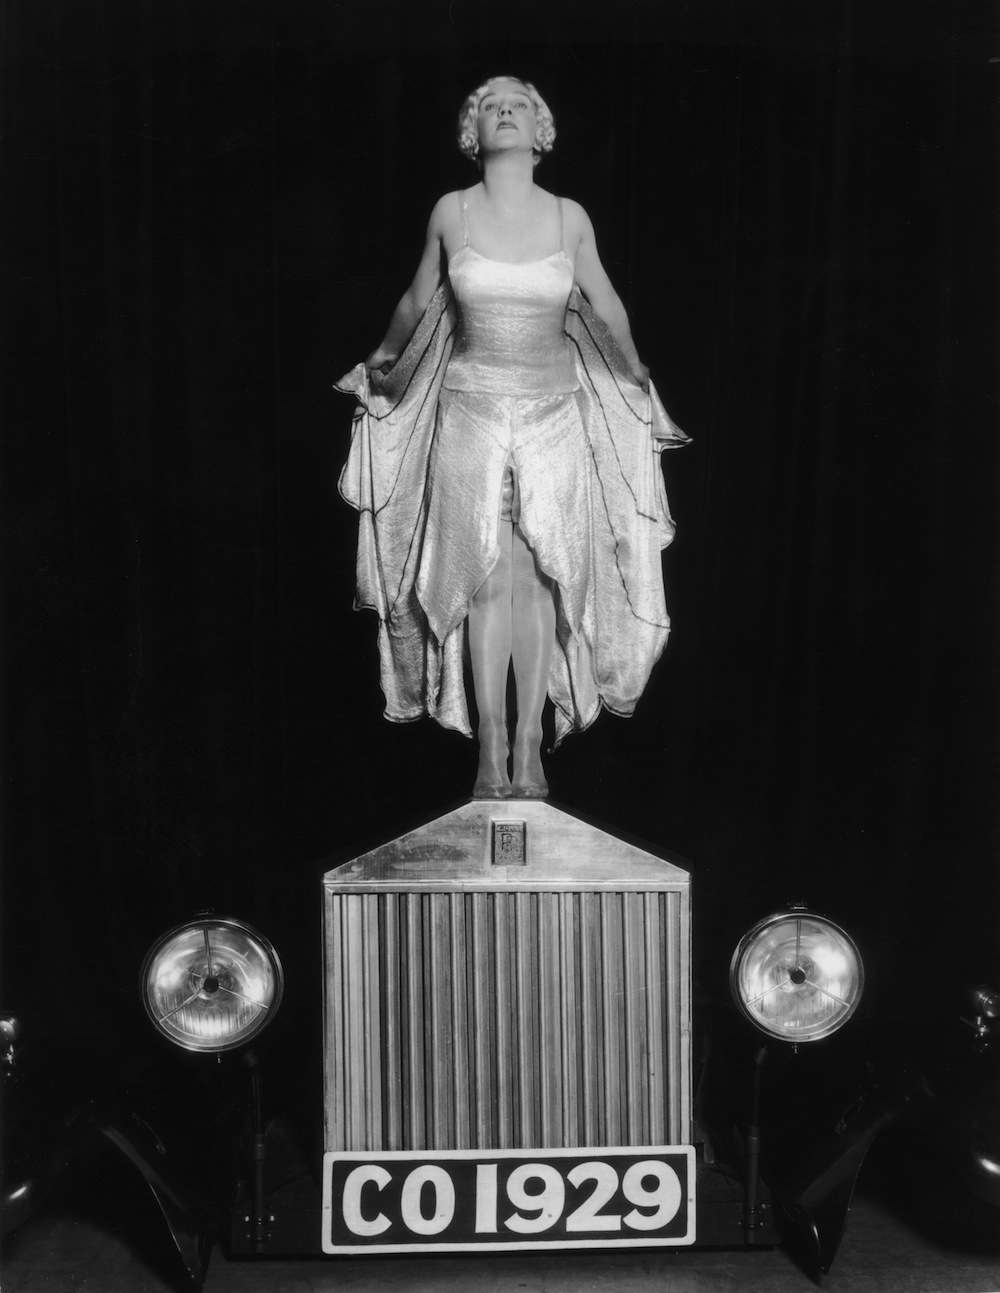 1929:  Entertainer Elsa McFarlane stands on the bonnet of a Rolls Royce car, mimicking the Silver Lady figurine, in a production of 'The Co-Optimists', at the Vaudeville Theatre in London.  (Photo by Sasha/Getty Images)